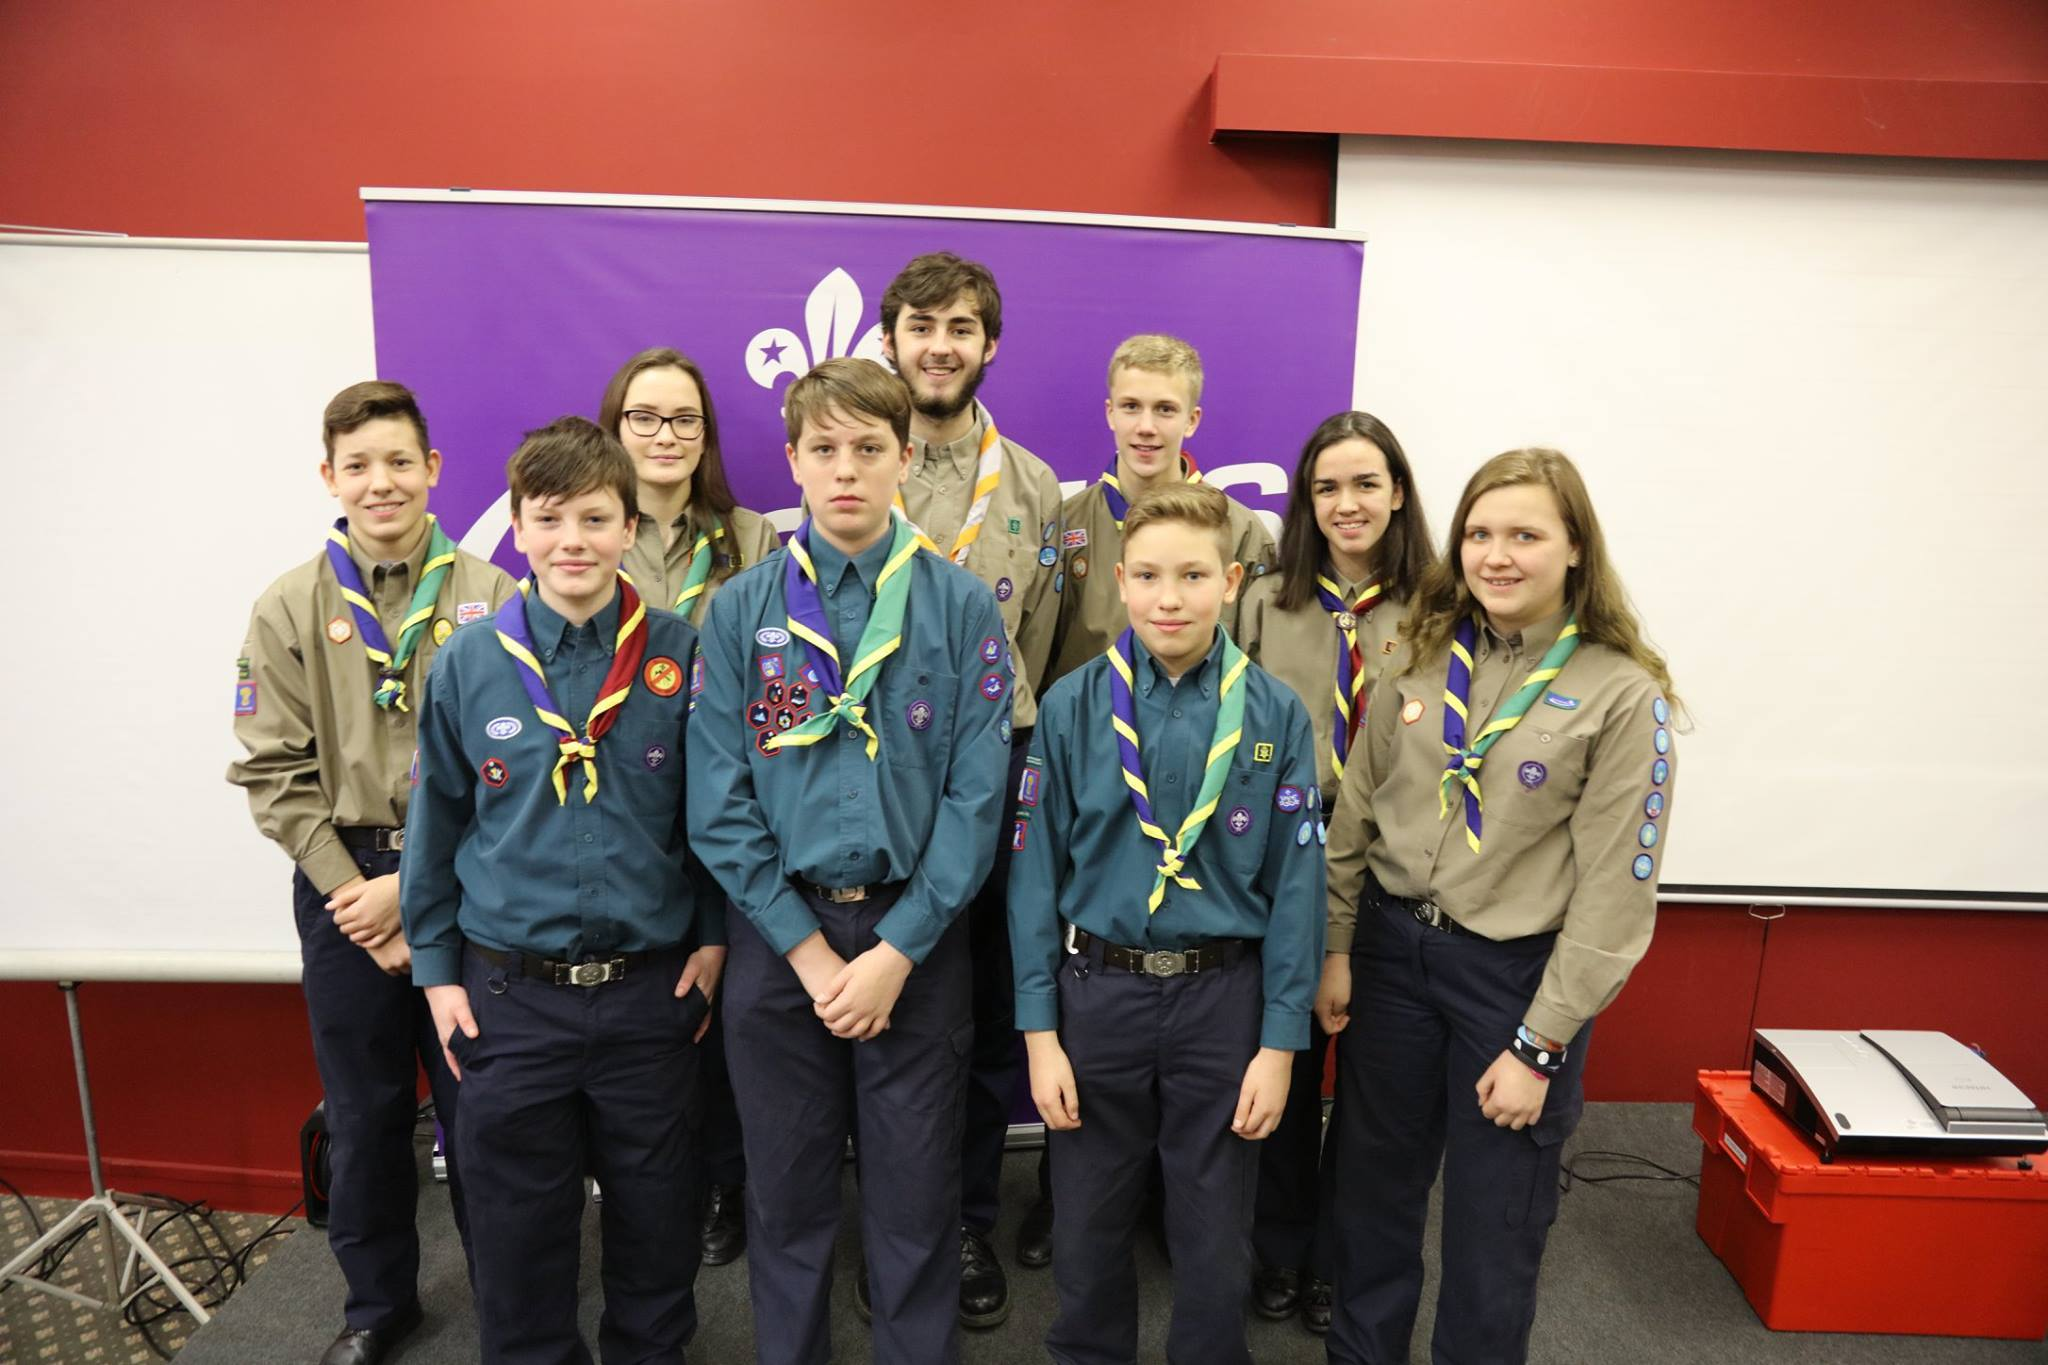 The Warrington West Scouts are raising funds for their trip to West Virginia for the 2019 World Scout Jamboree.